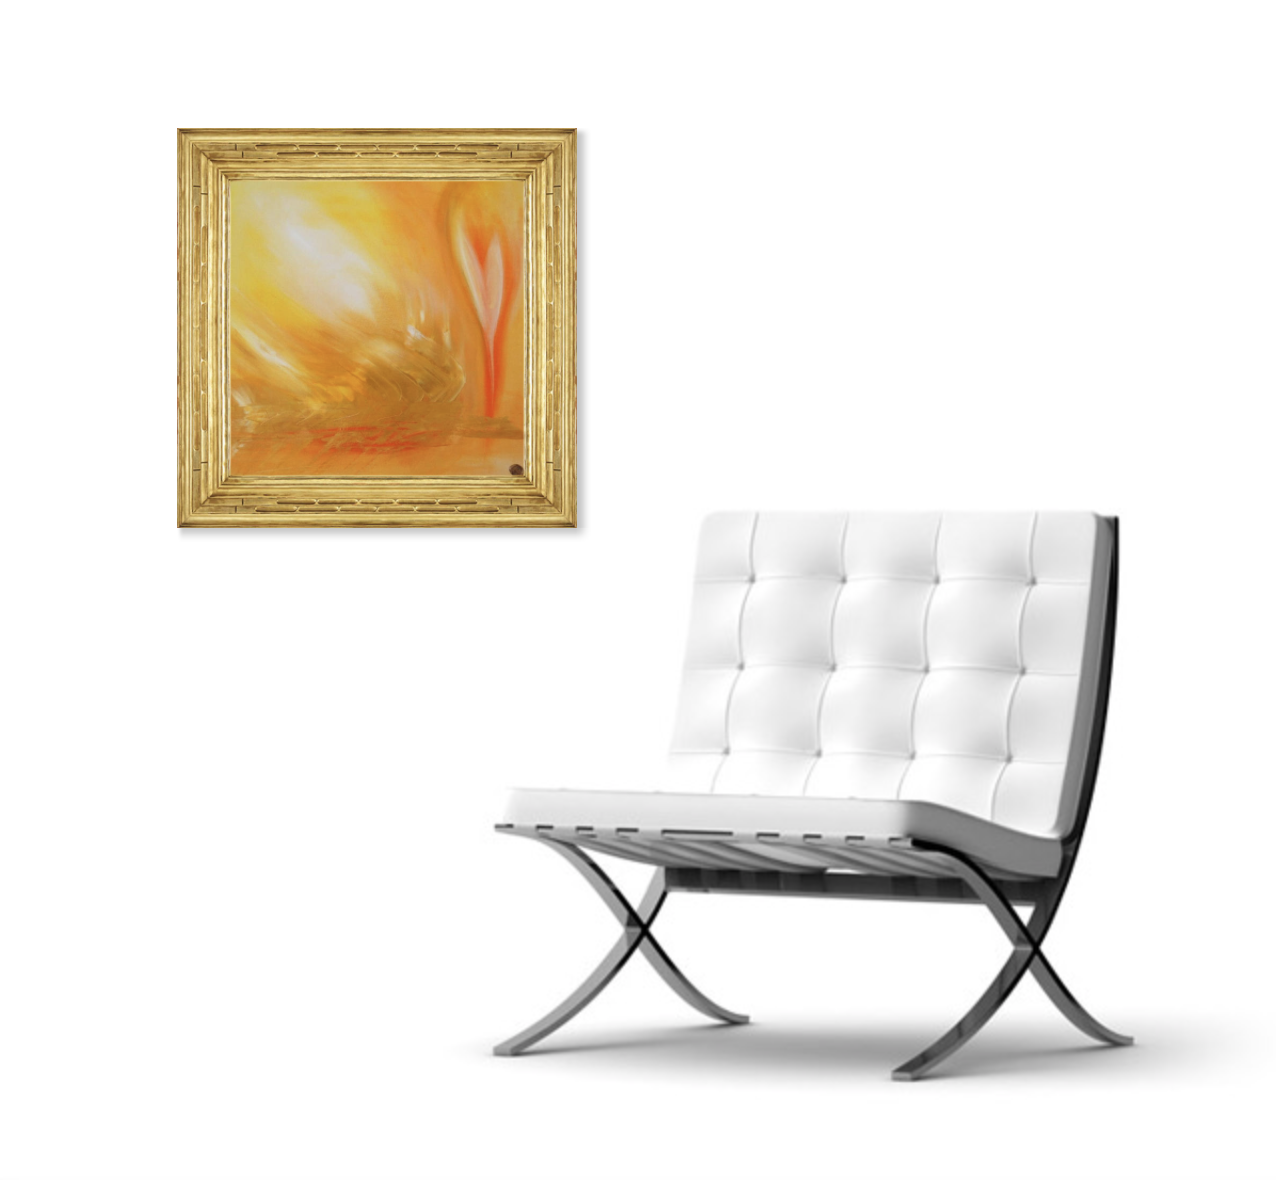 lumen-ron-labryzz-rlart-in-context-abstract-painting